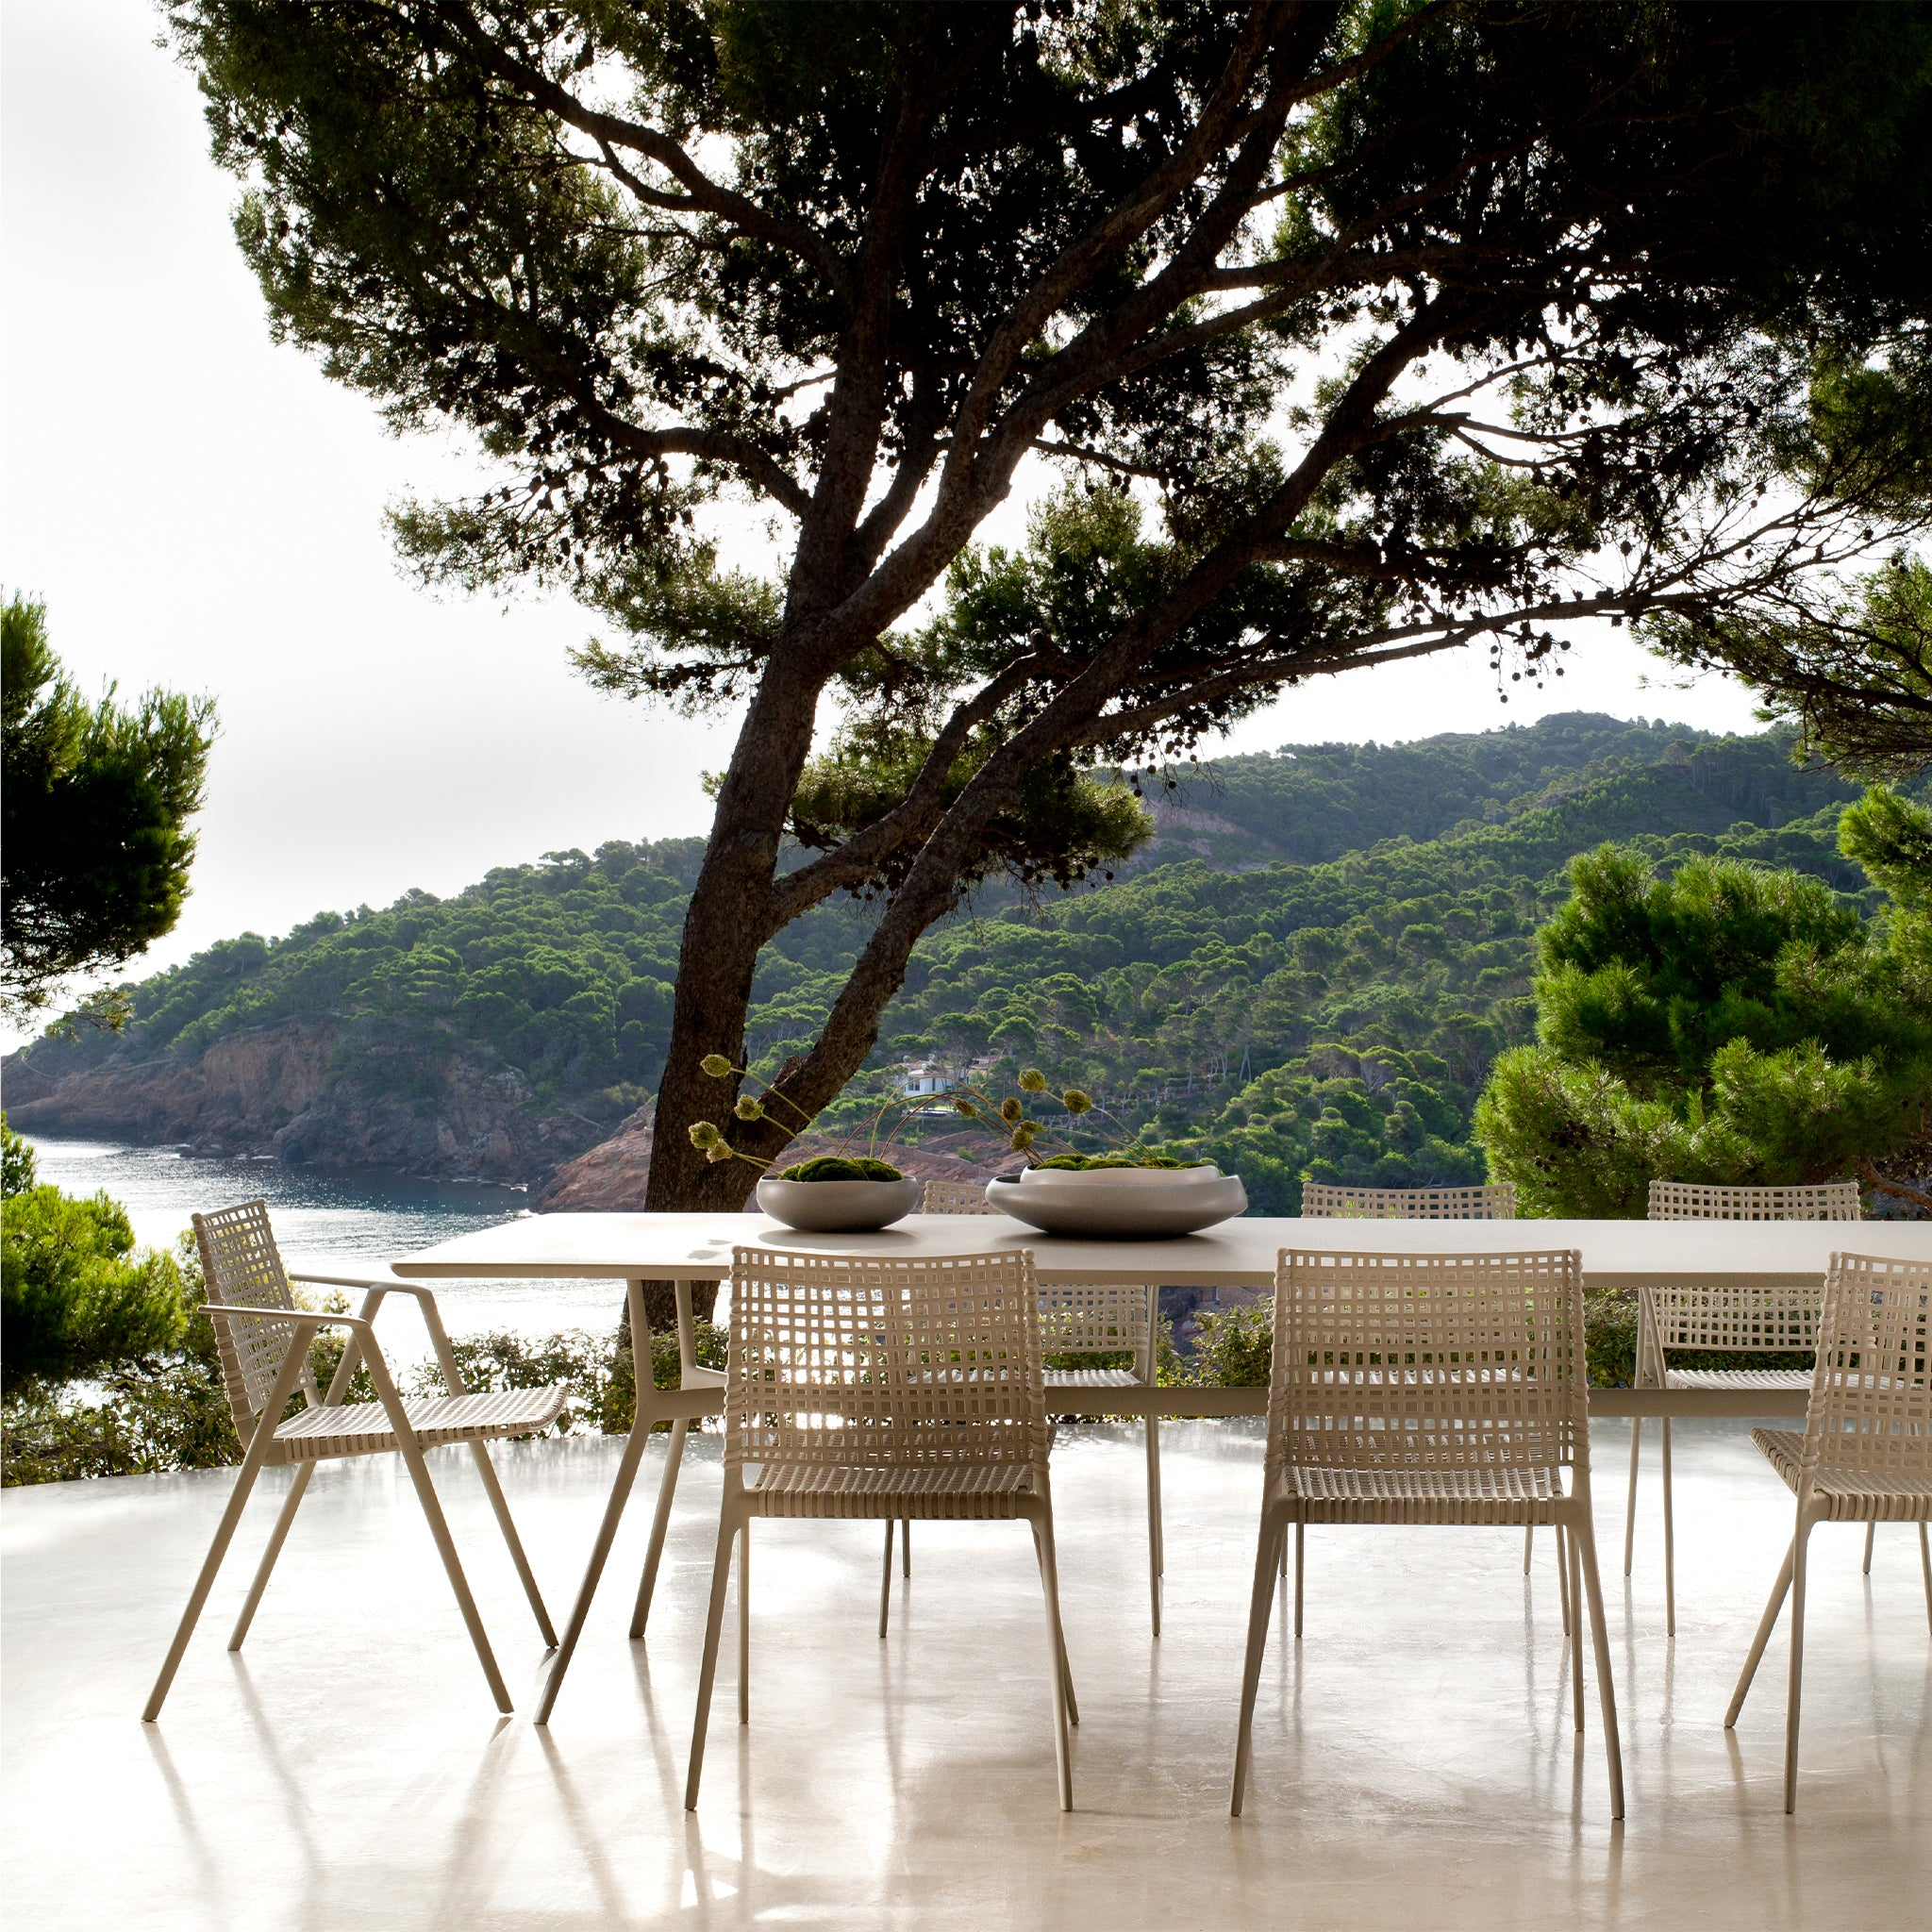 BRANCH Dining Table Outdoor Altherr Lievore Molina Designer Furniture Sku: 007-200-10214